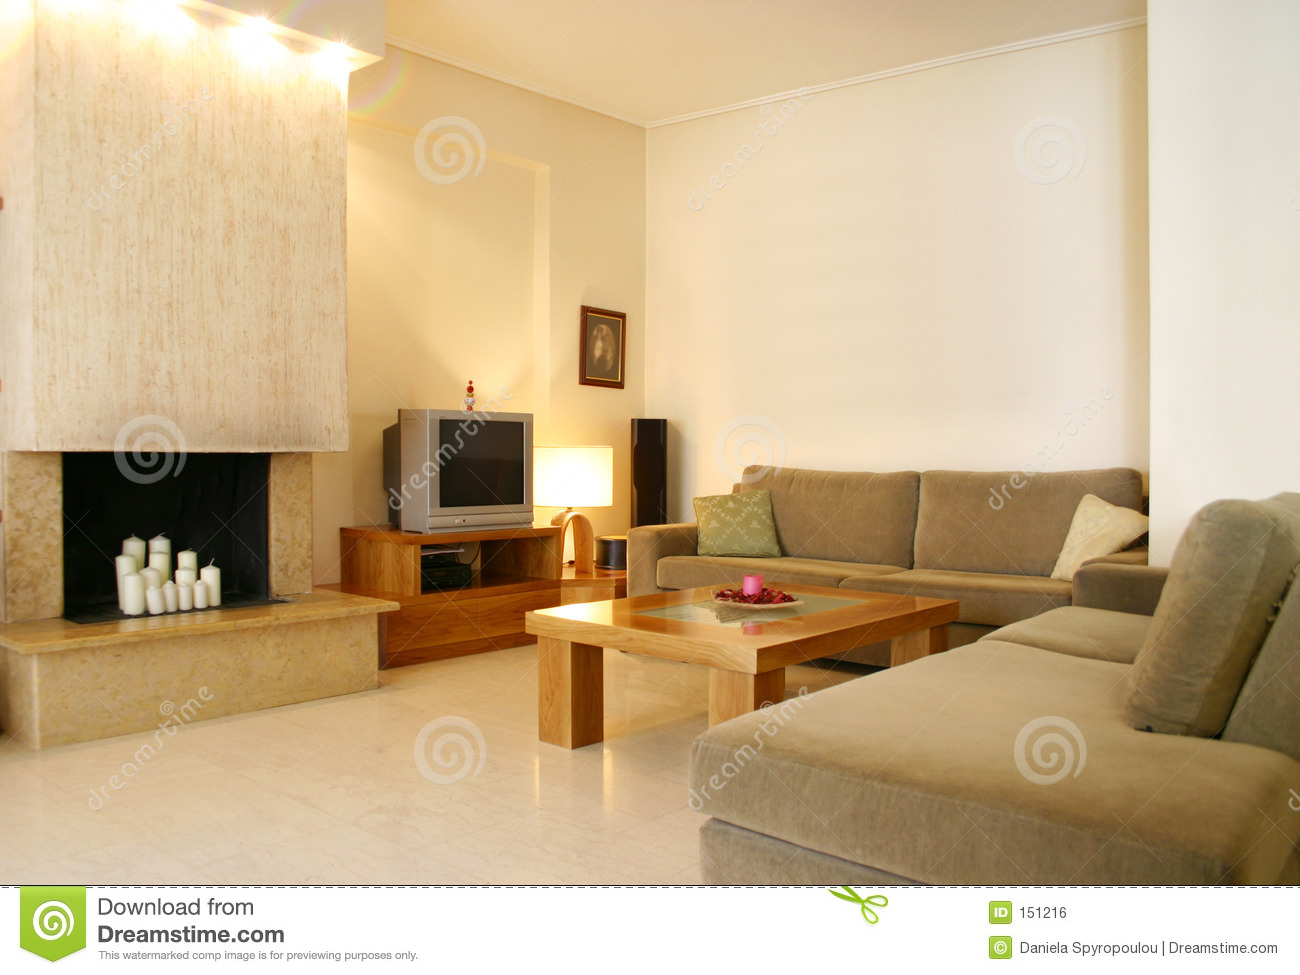 Admirable Home Interior Design Royalty Free Stock Image Image 151216 Largest Home Design Picture Inspirations Pitcheantrous